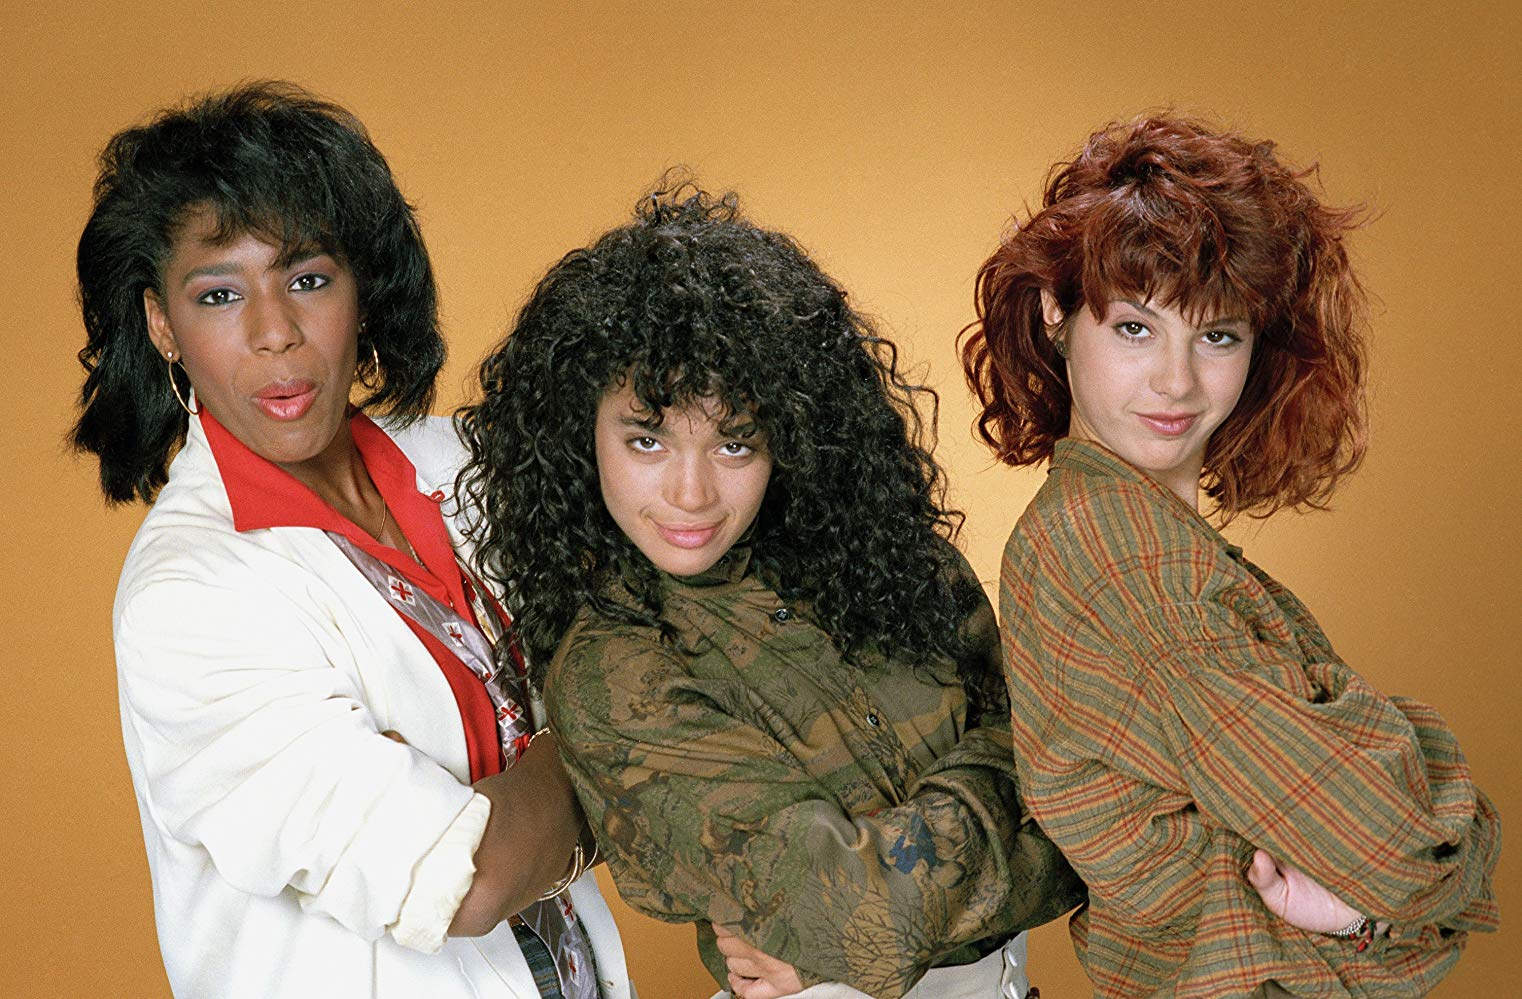 Lisa in A DifferentWorld